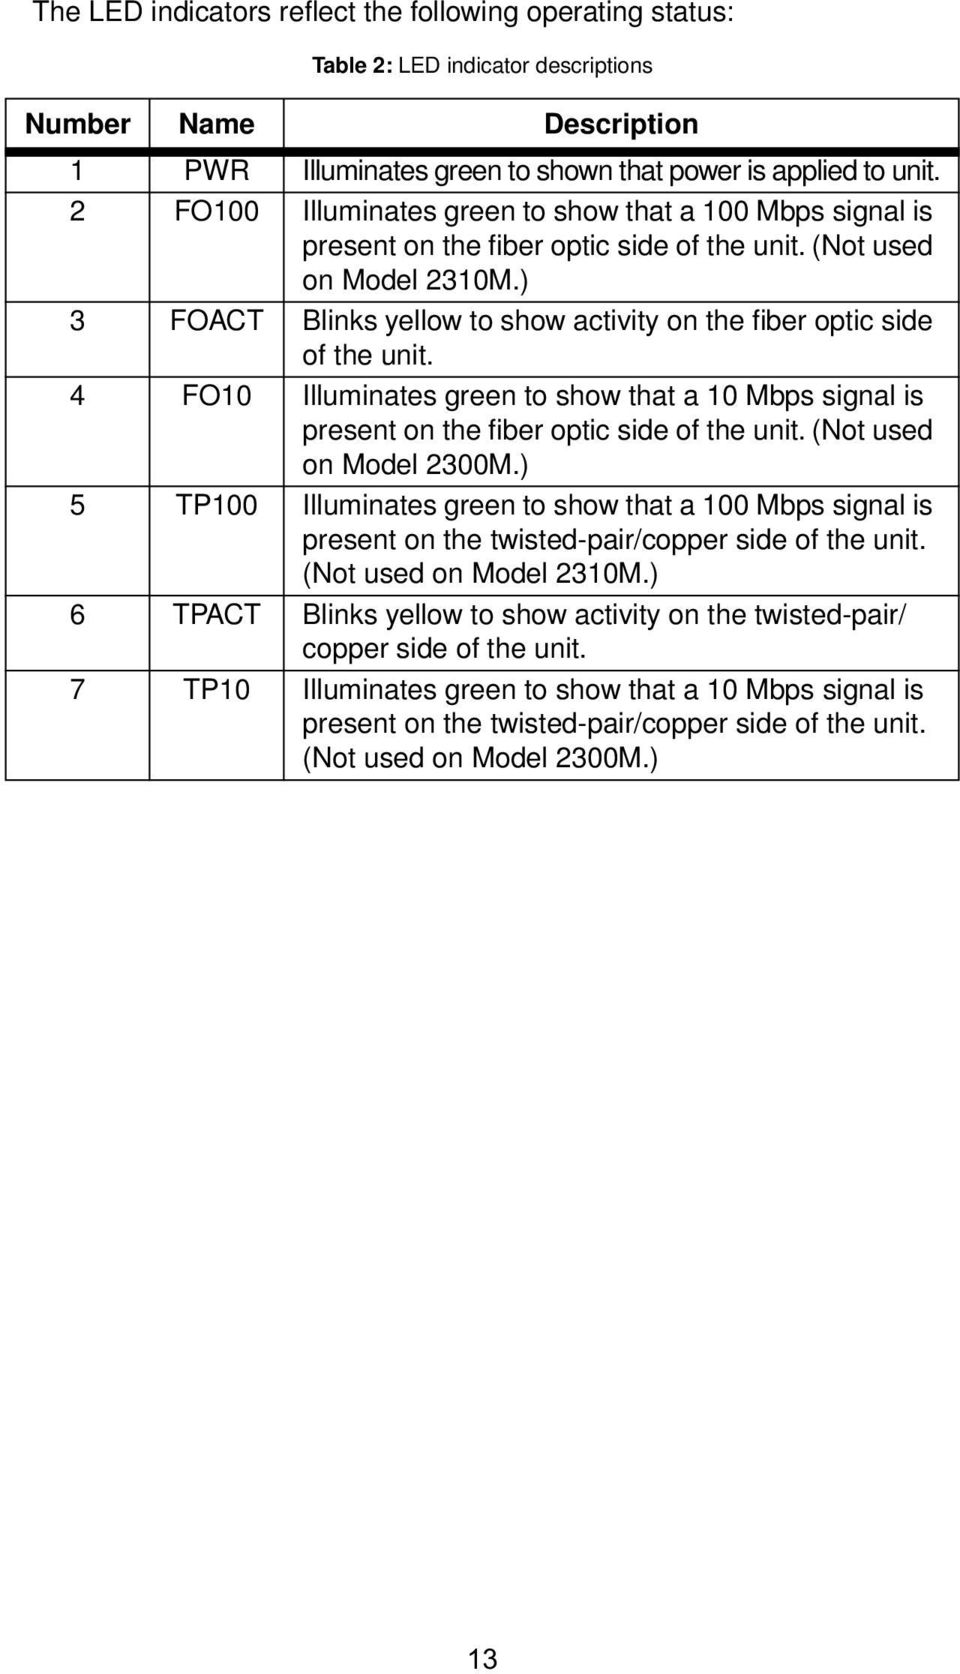 ) 3 FOACT Blinks yellow to show activity on the fiber optic side of the unit. 4 FO10 Illuminates green to show that a 10 Mbps signal is present on the fiber optic side of the unit.